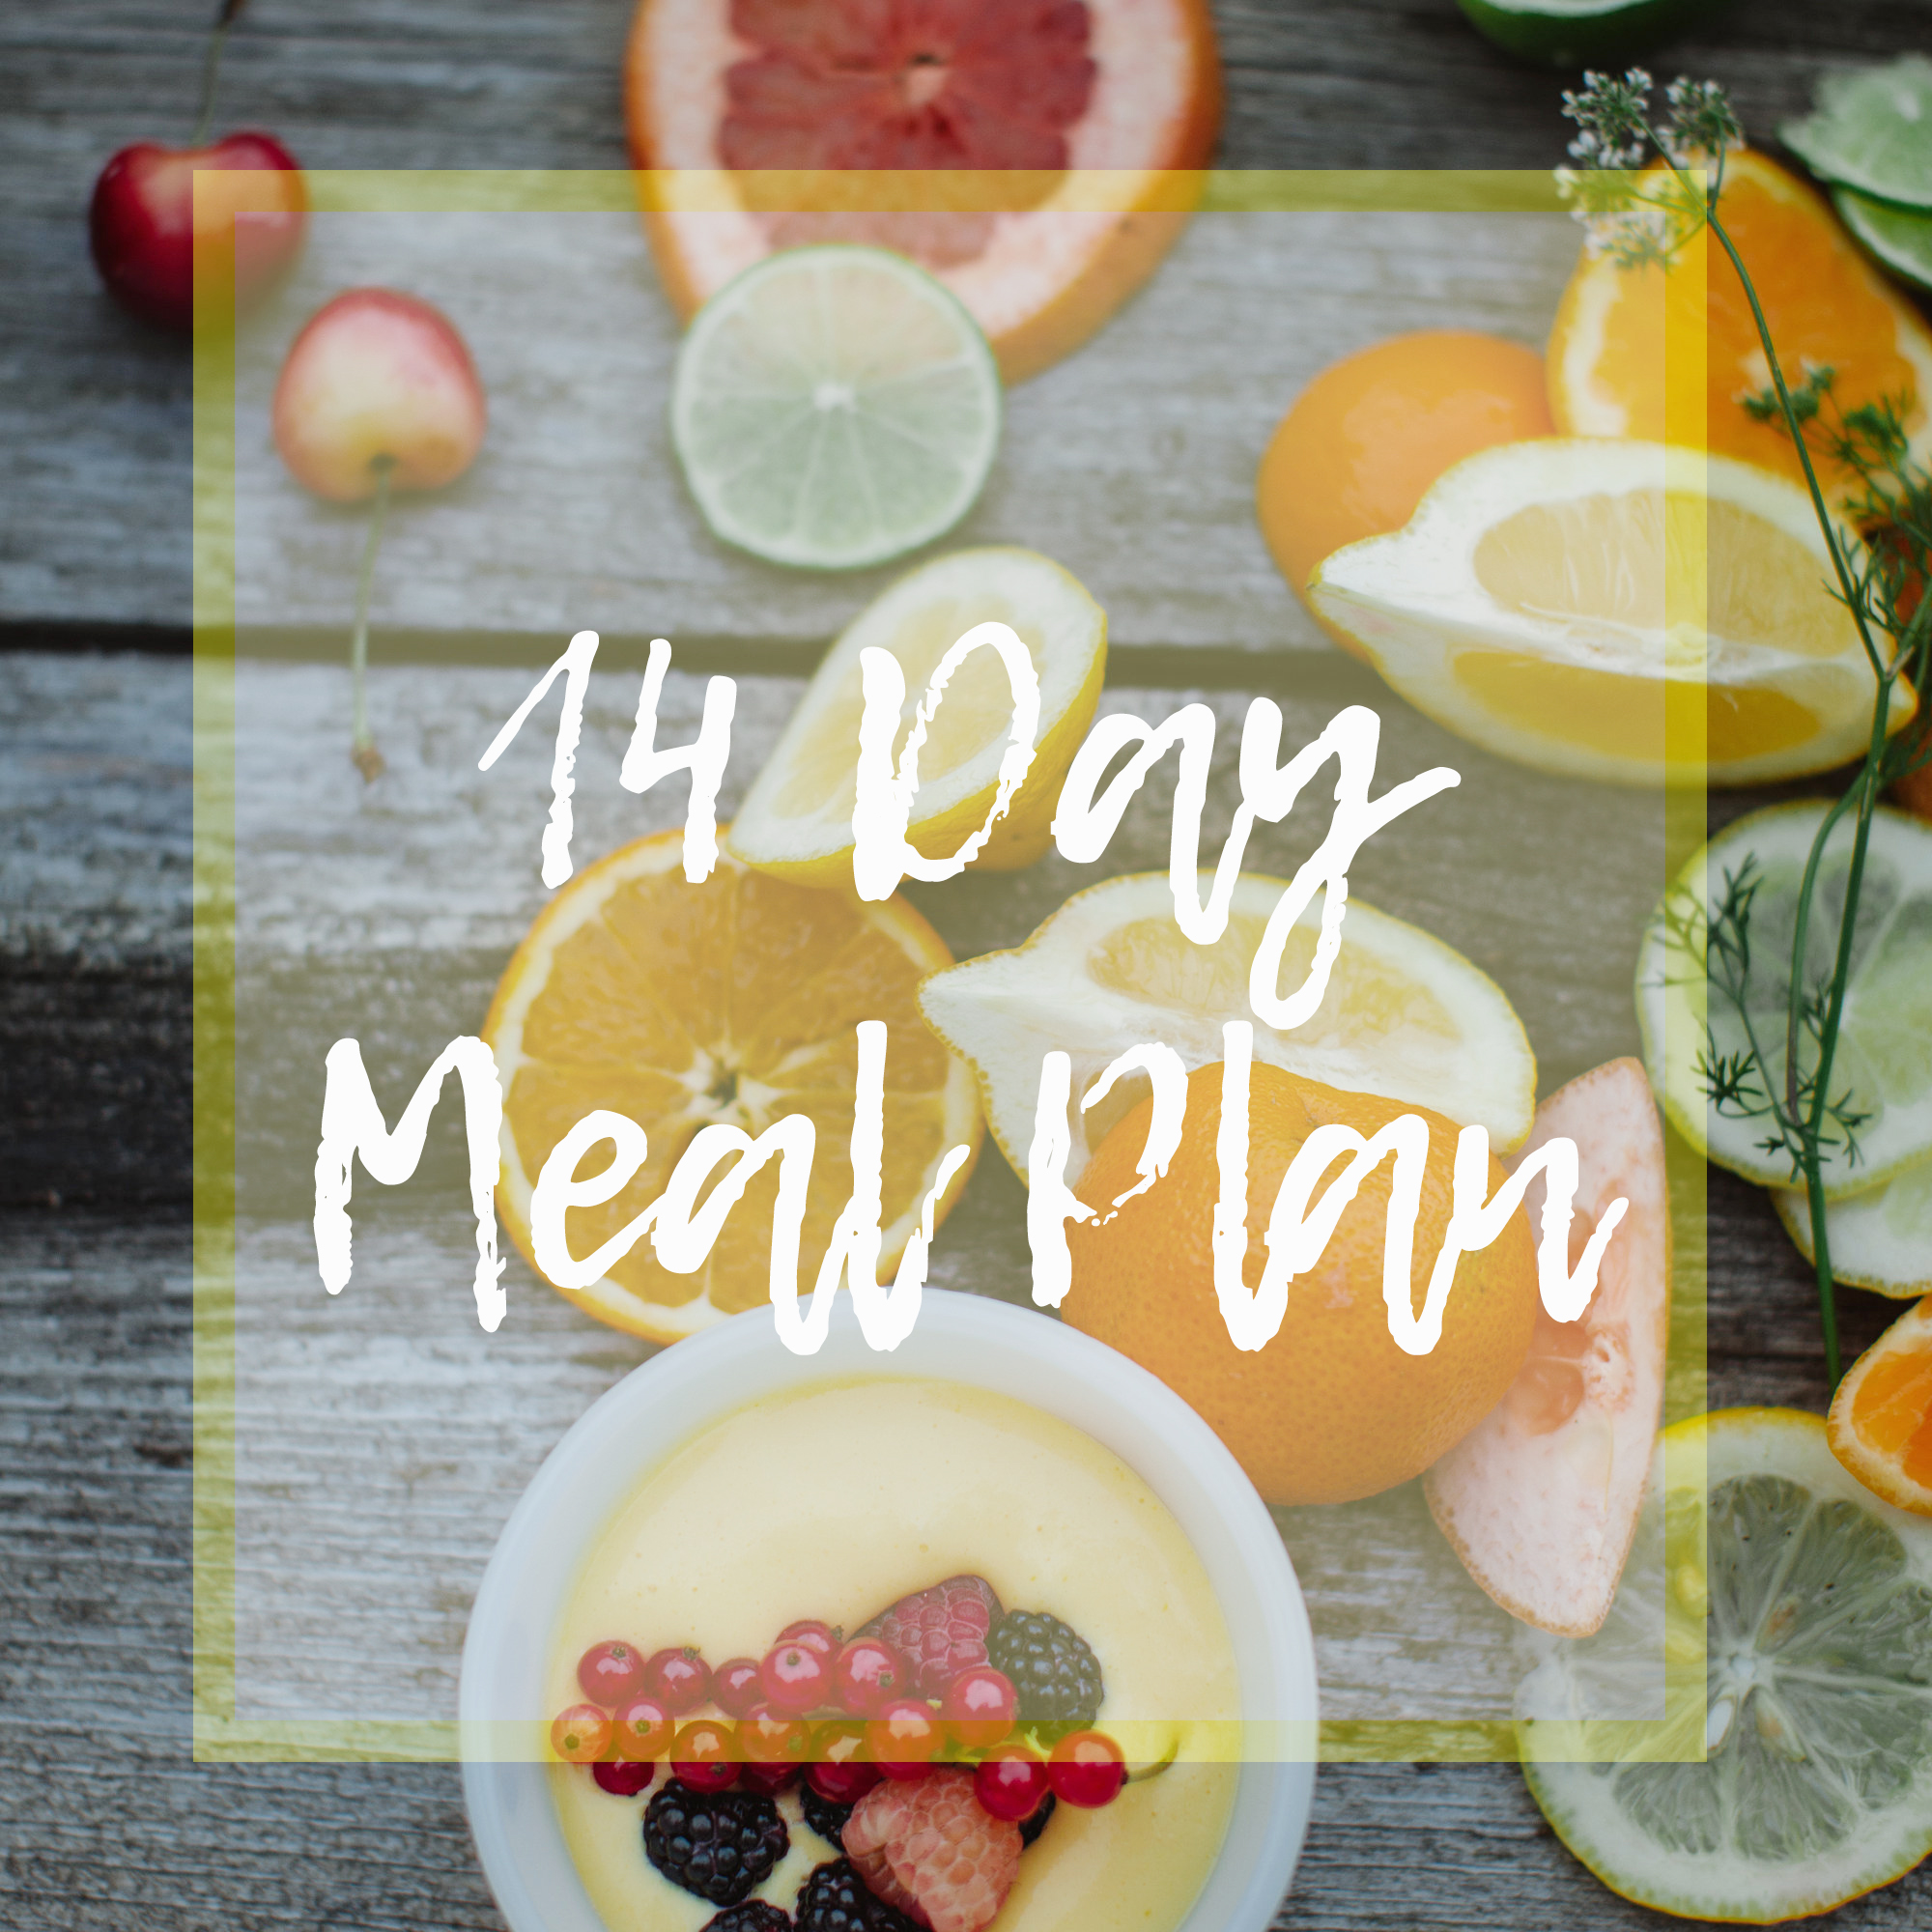 14 days of plant powered whole food nutrition! - Click the image to download.